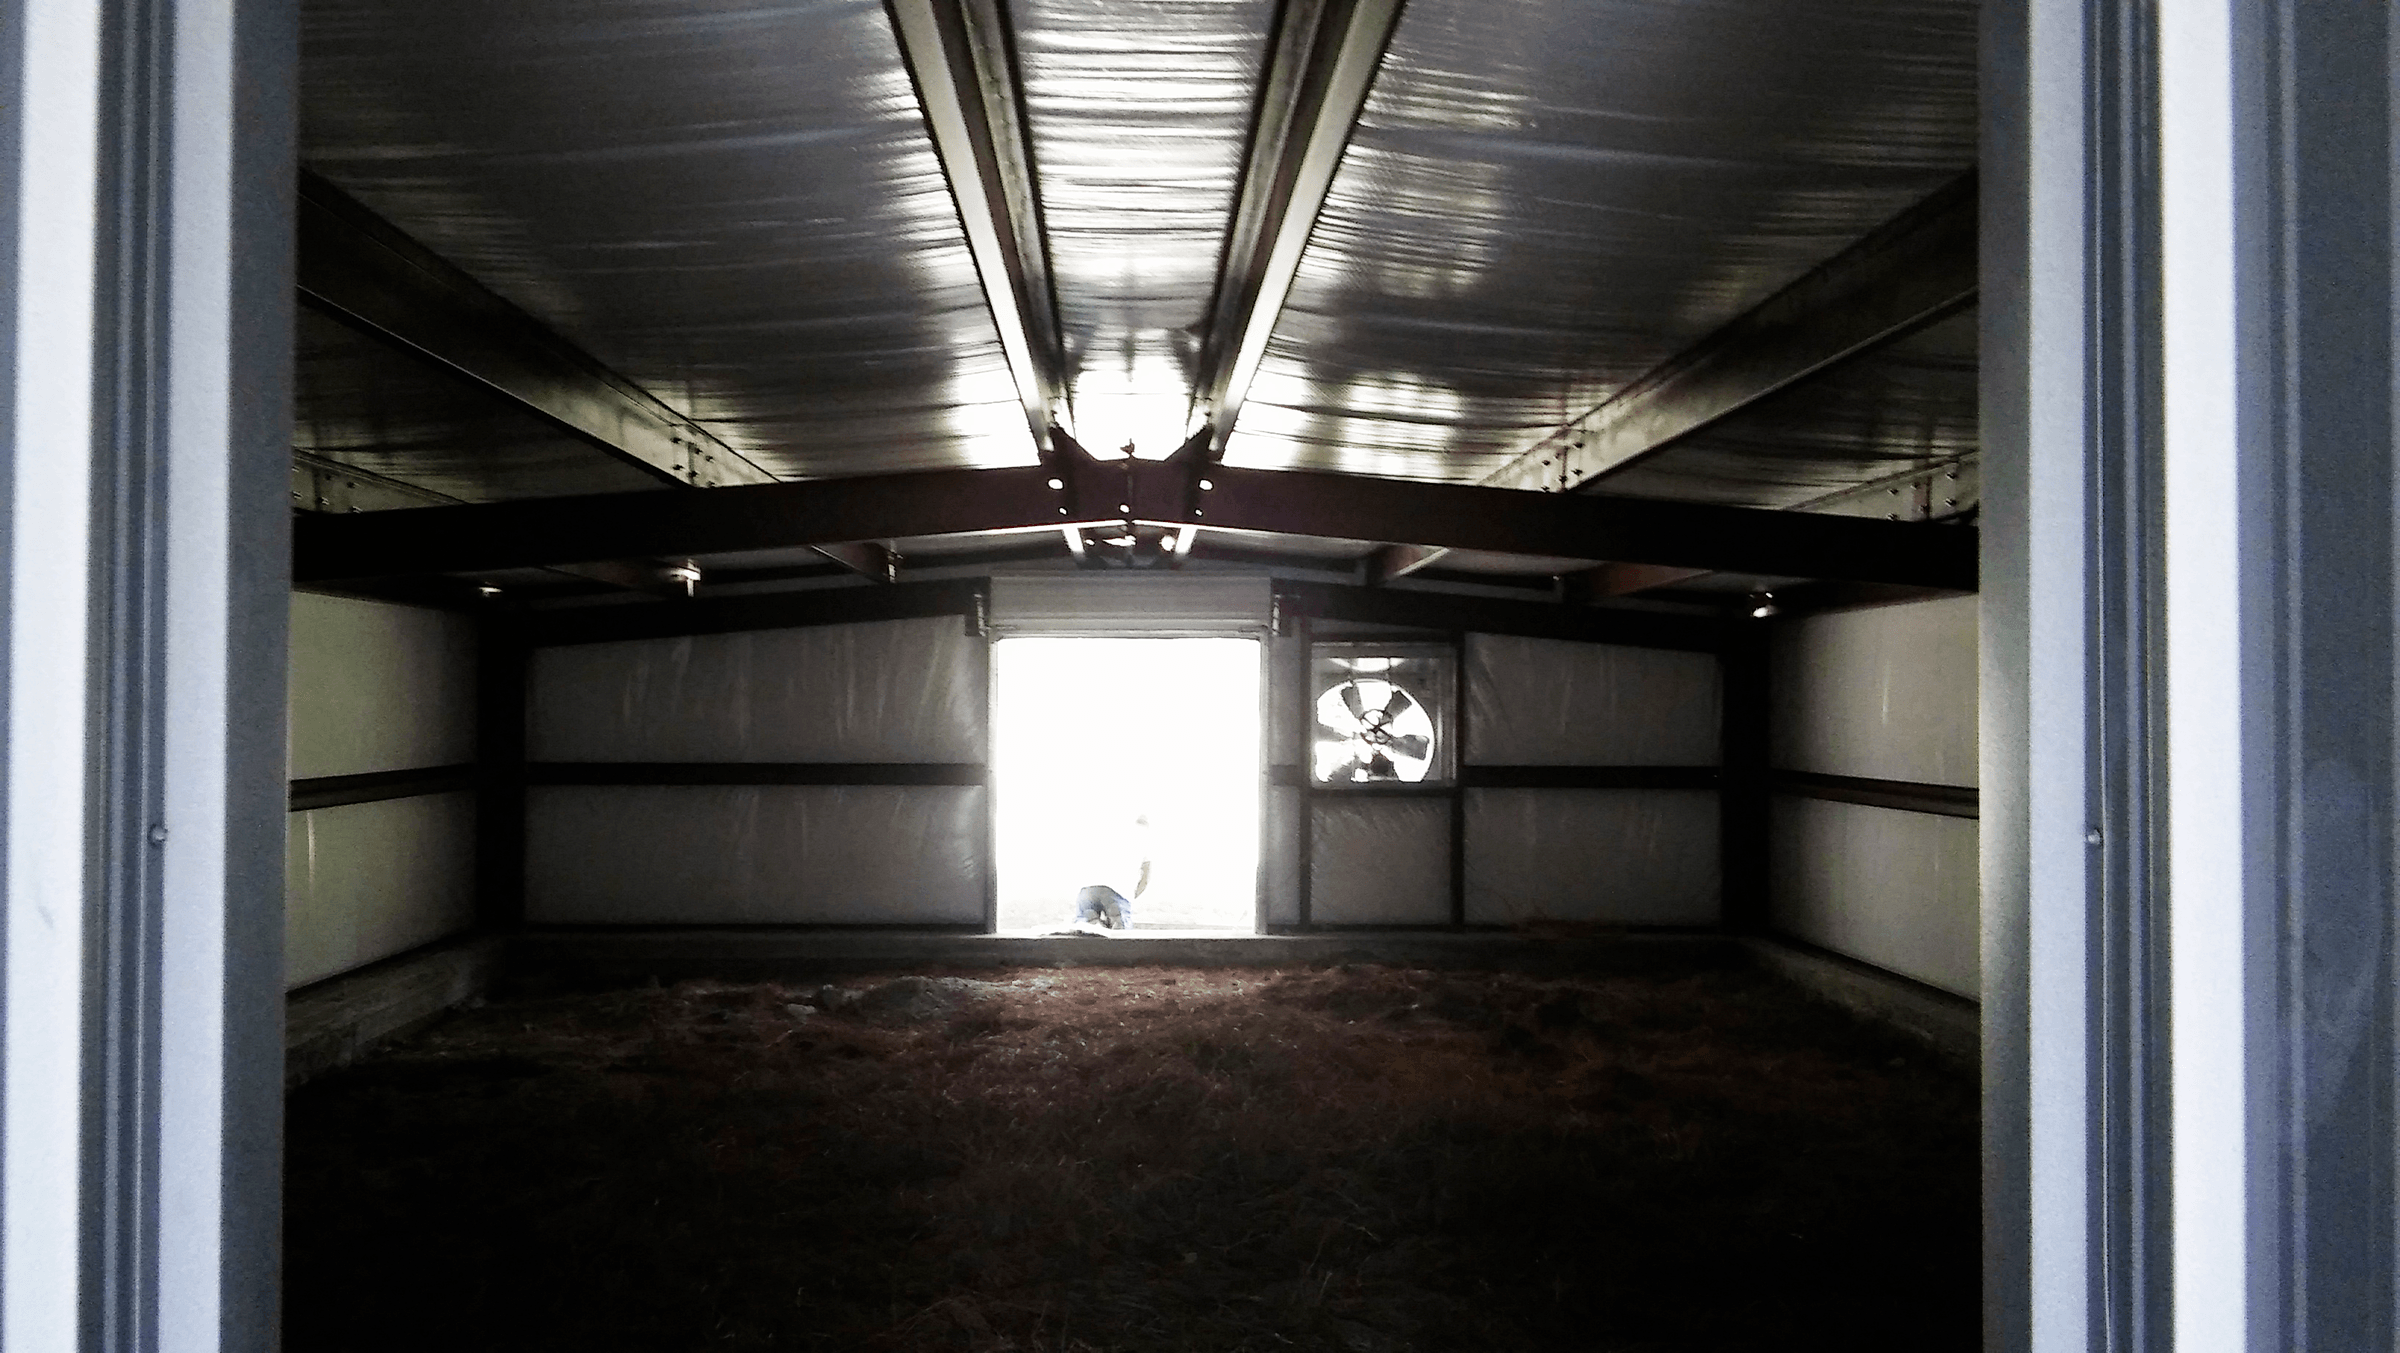 Although it's dark, this is the view of the back part of the building showing the double doors and large exhaust fan.